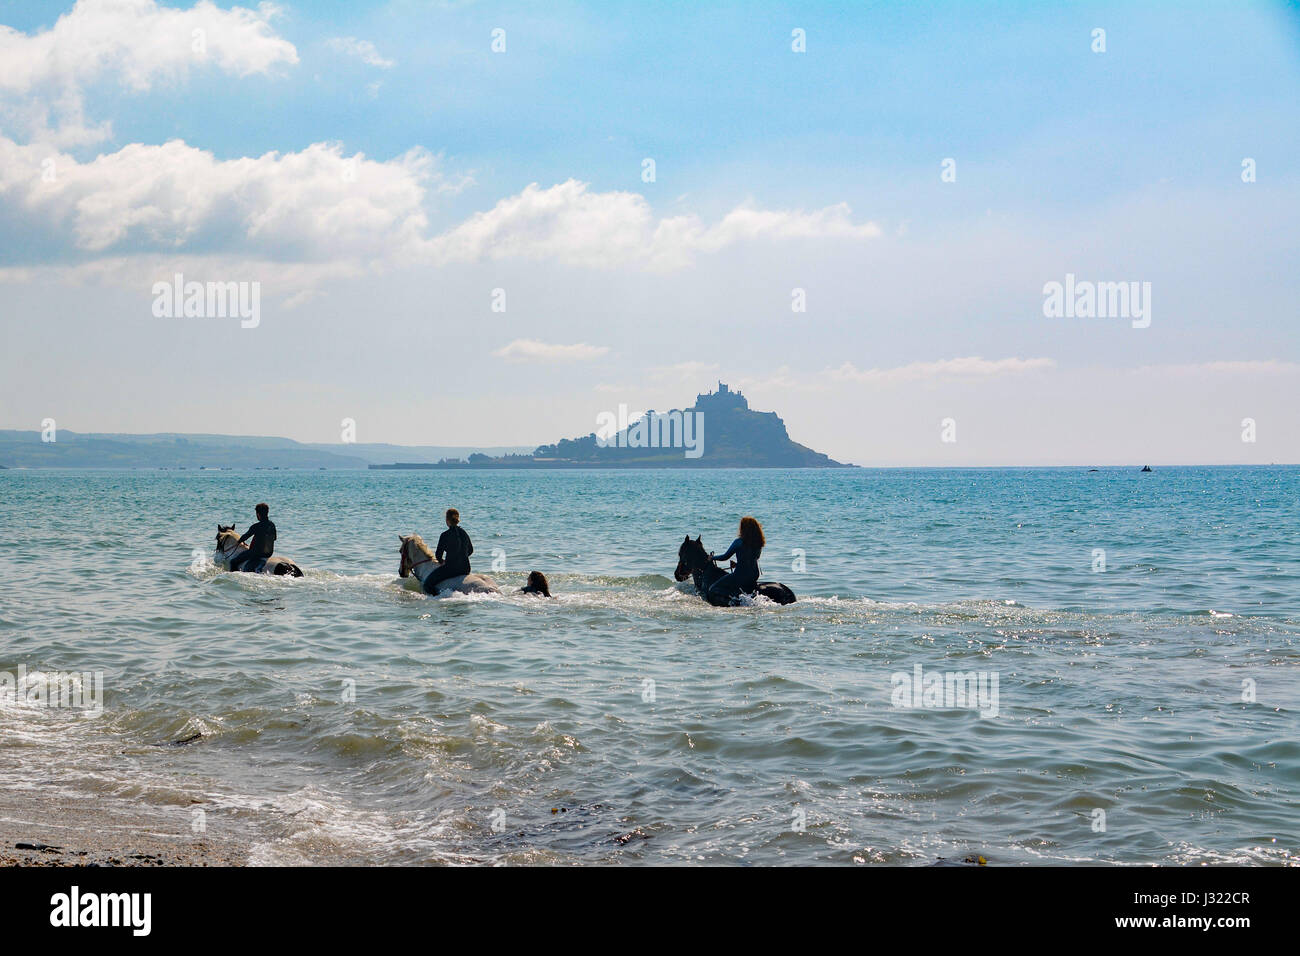 Swimming with horses stock photos swimming with horses stock images alamy for Appleby swimming pool timetable